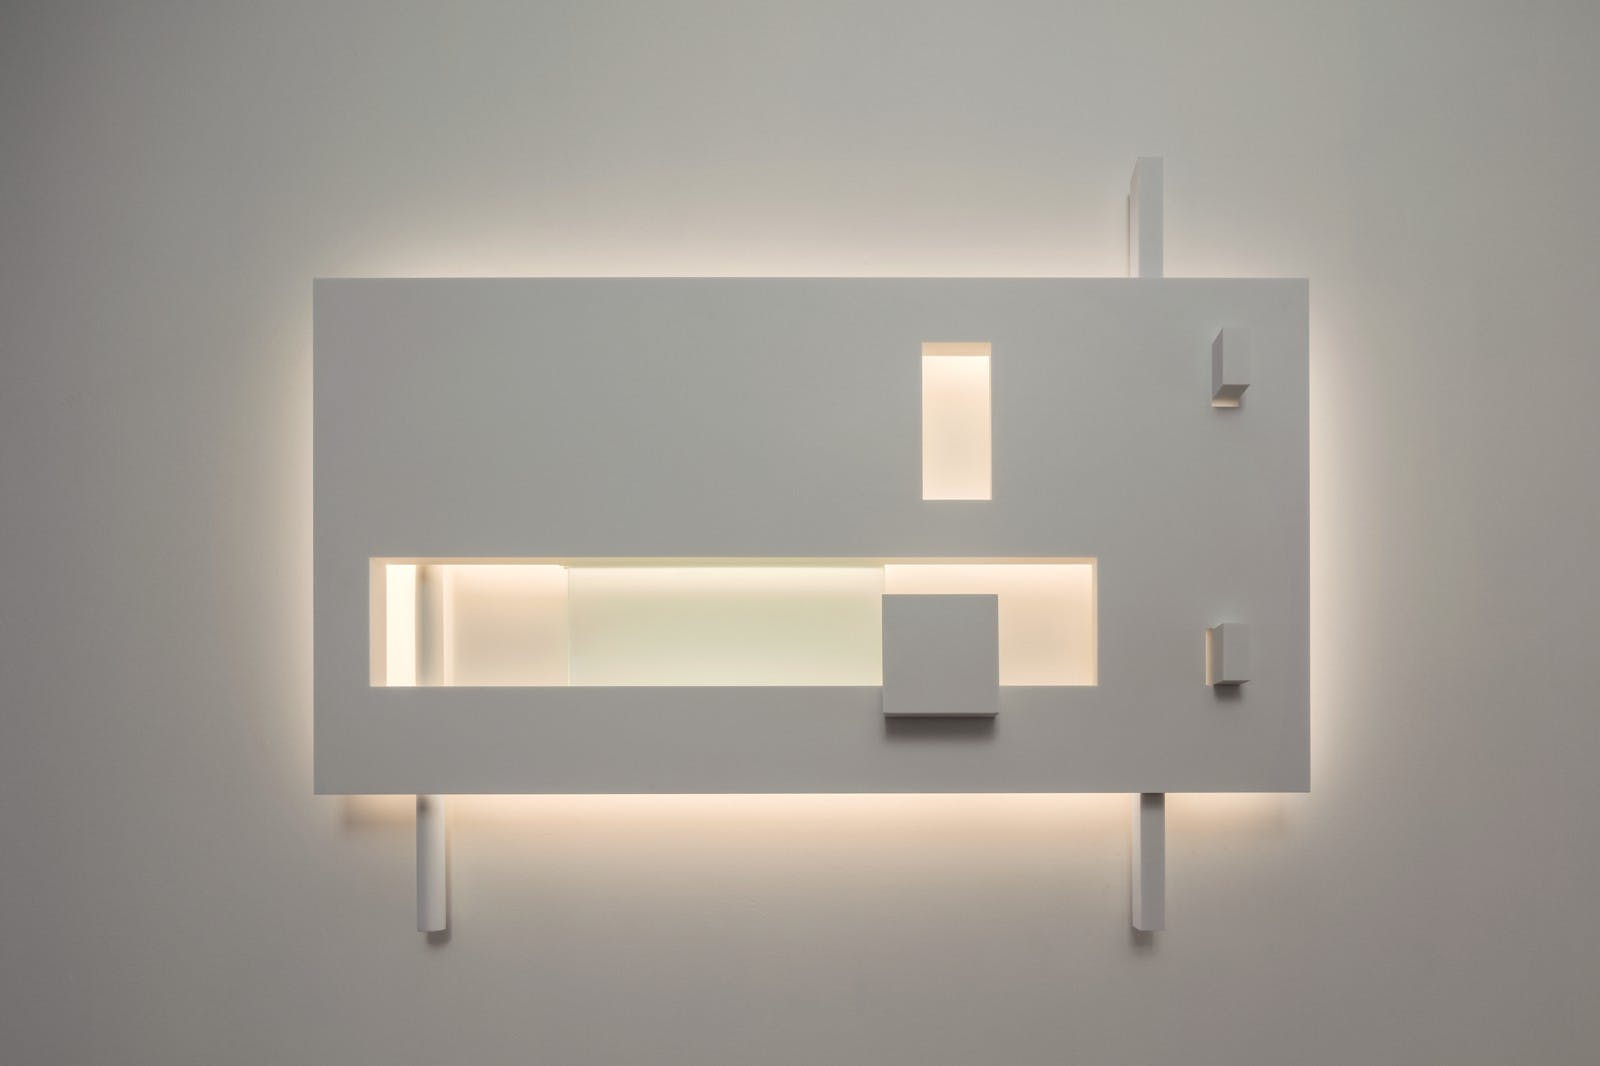 The new richard meier light collection captures elements of the barcelona i photo scott frances arubaitofo Image collections